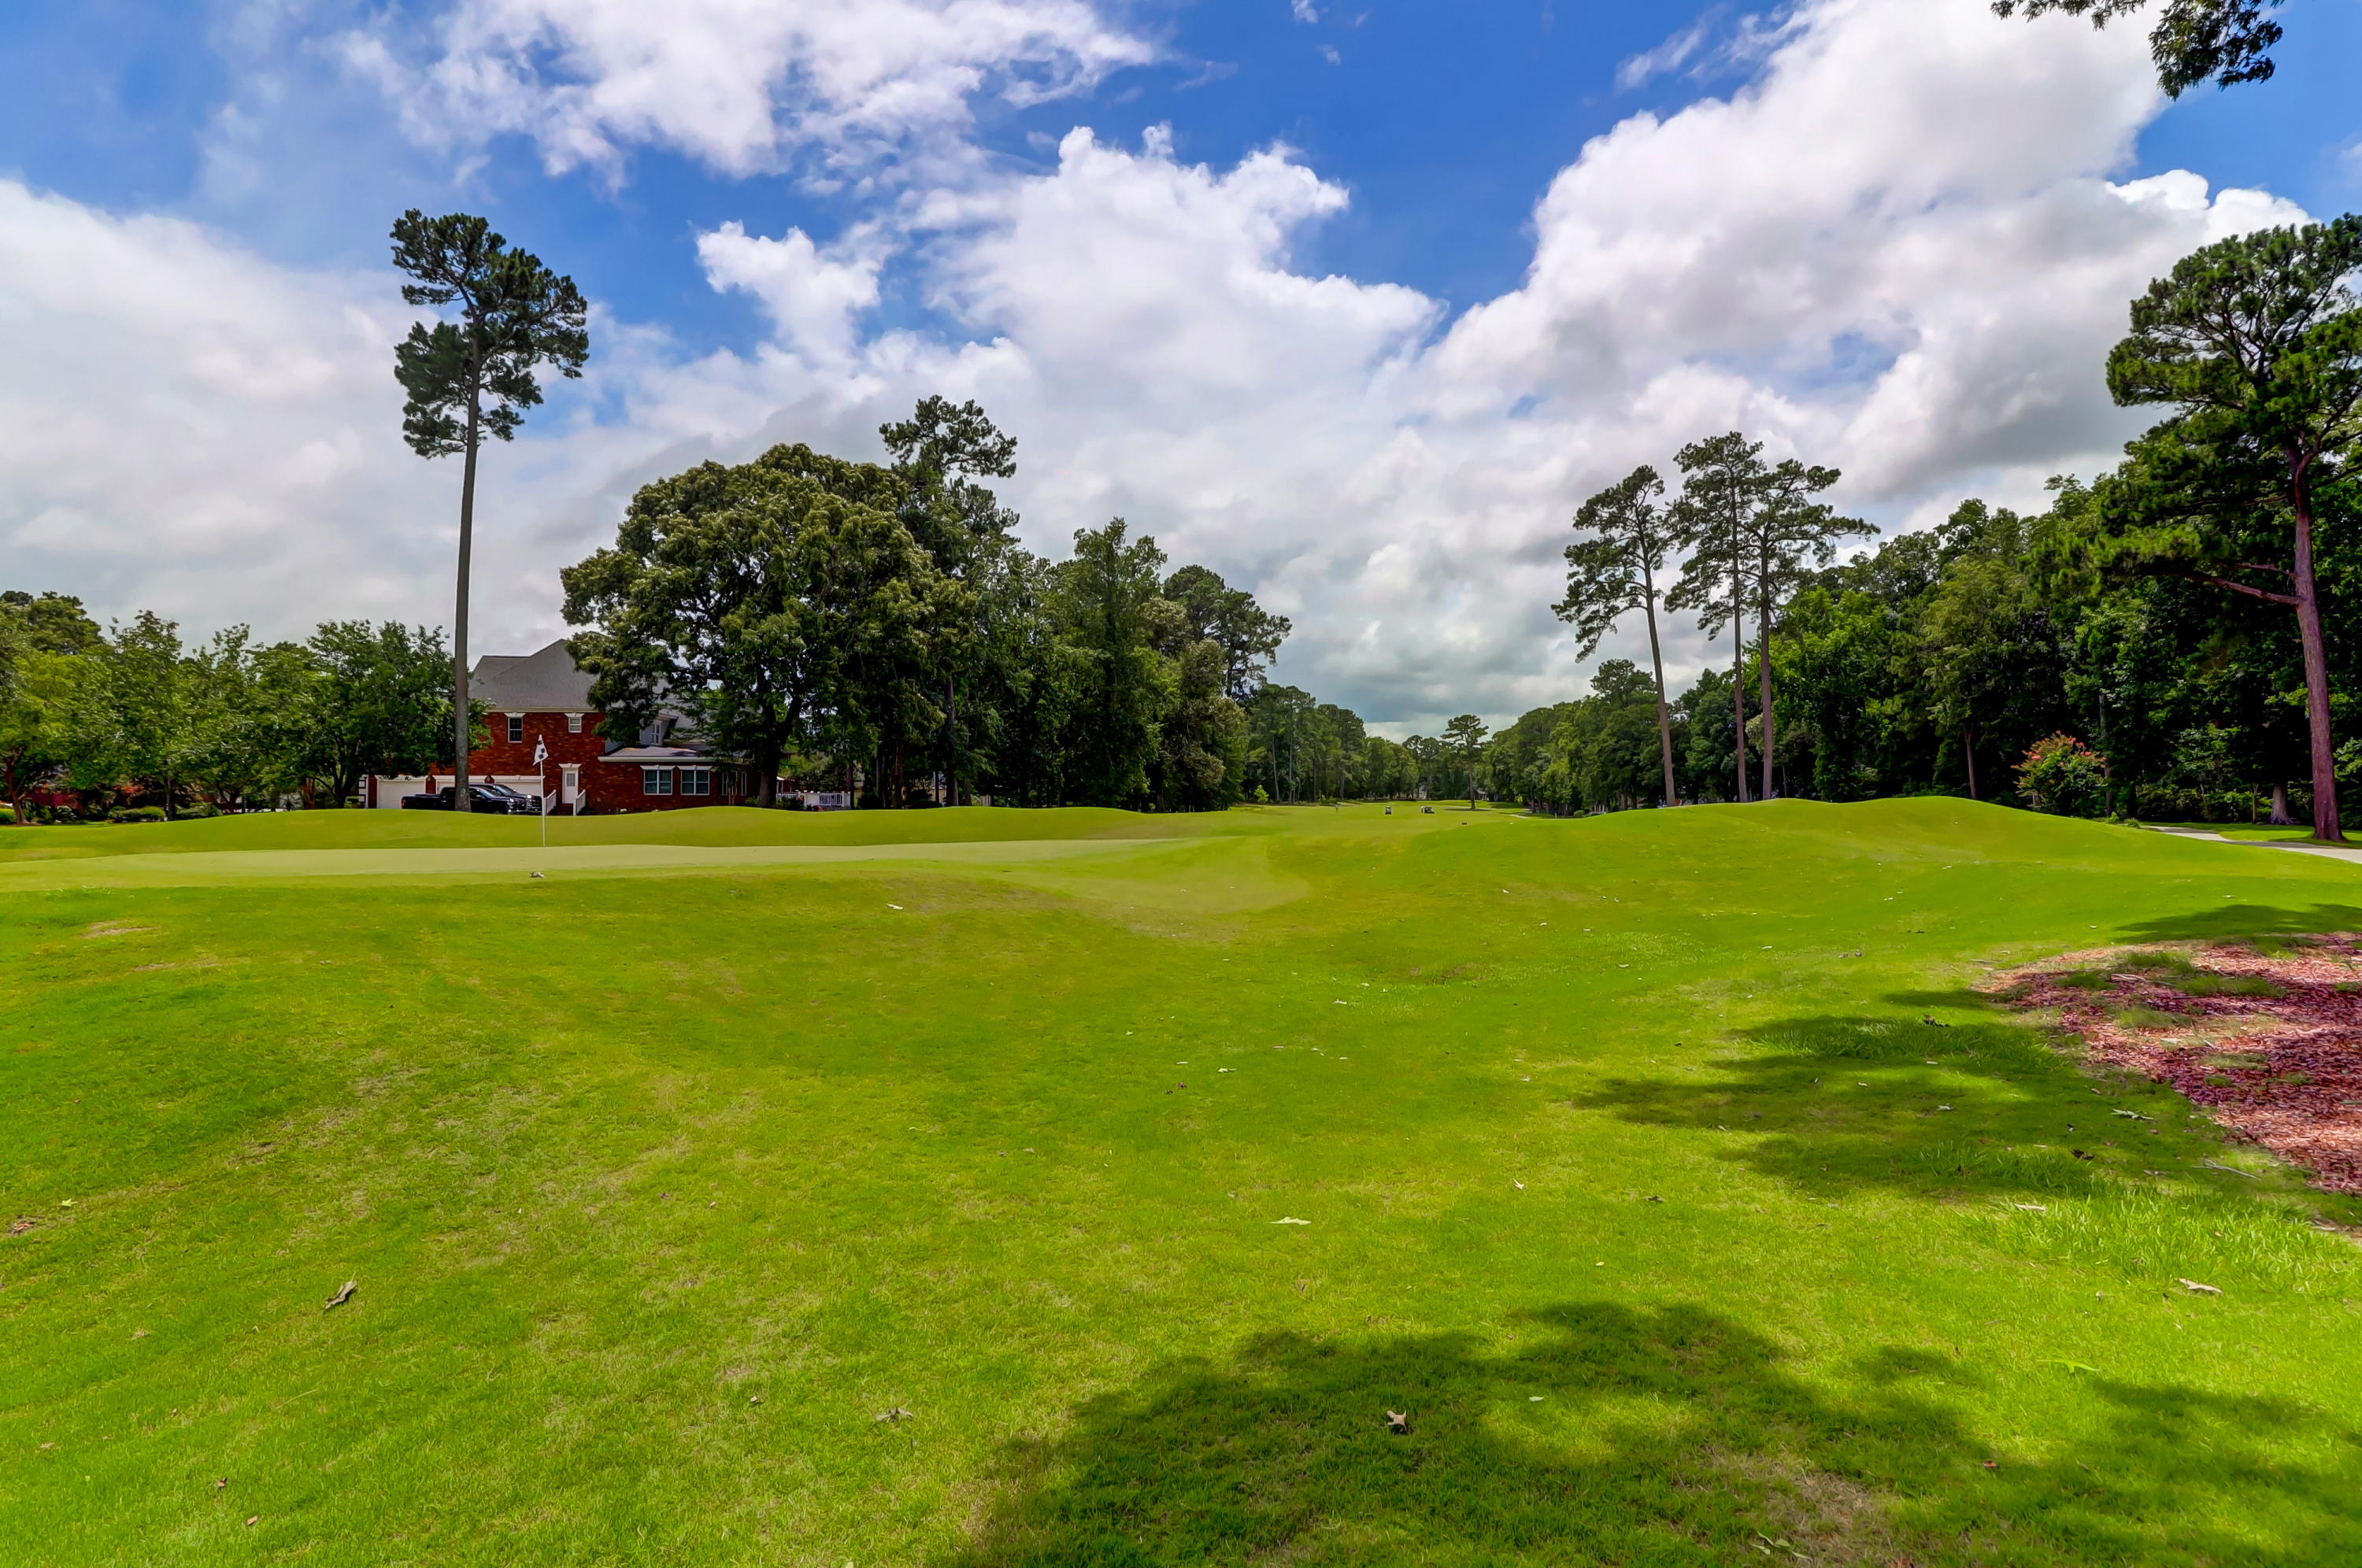 Coosaw Creek Country Club Homes For Sale - 8696 Fairway Woods, North Charleston, SC - 13